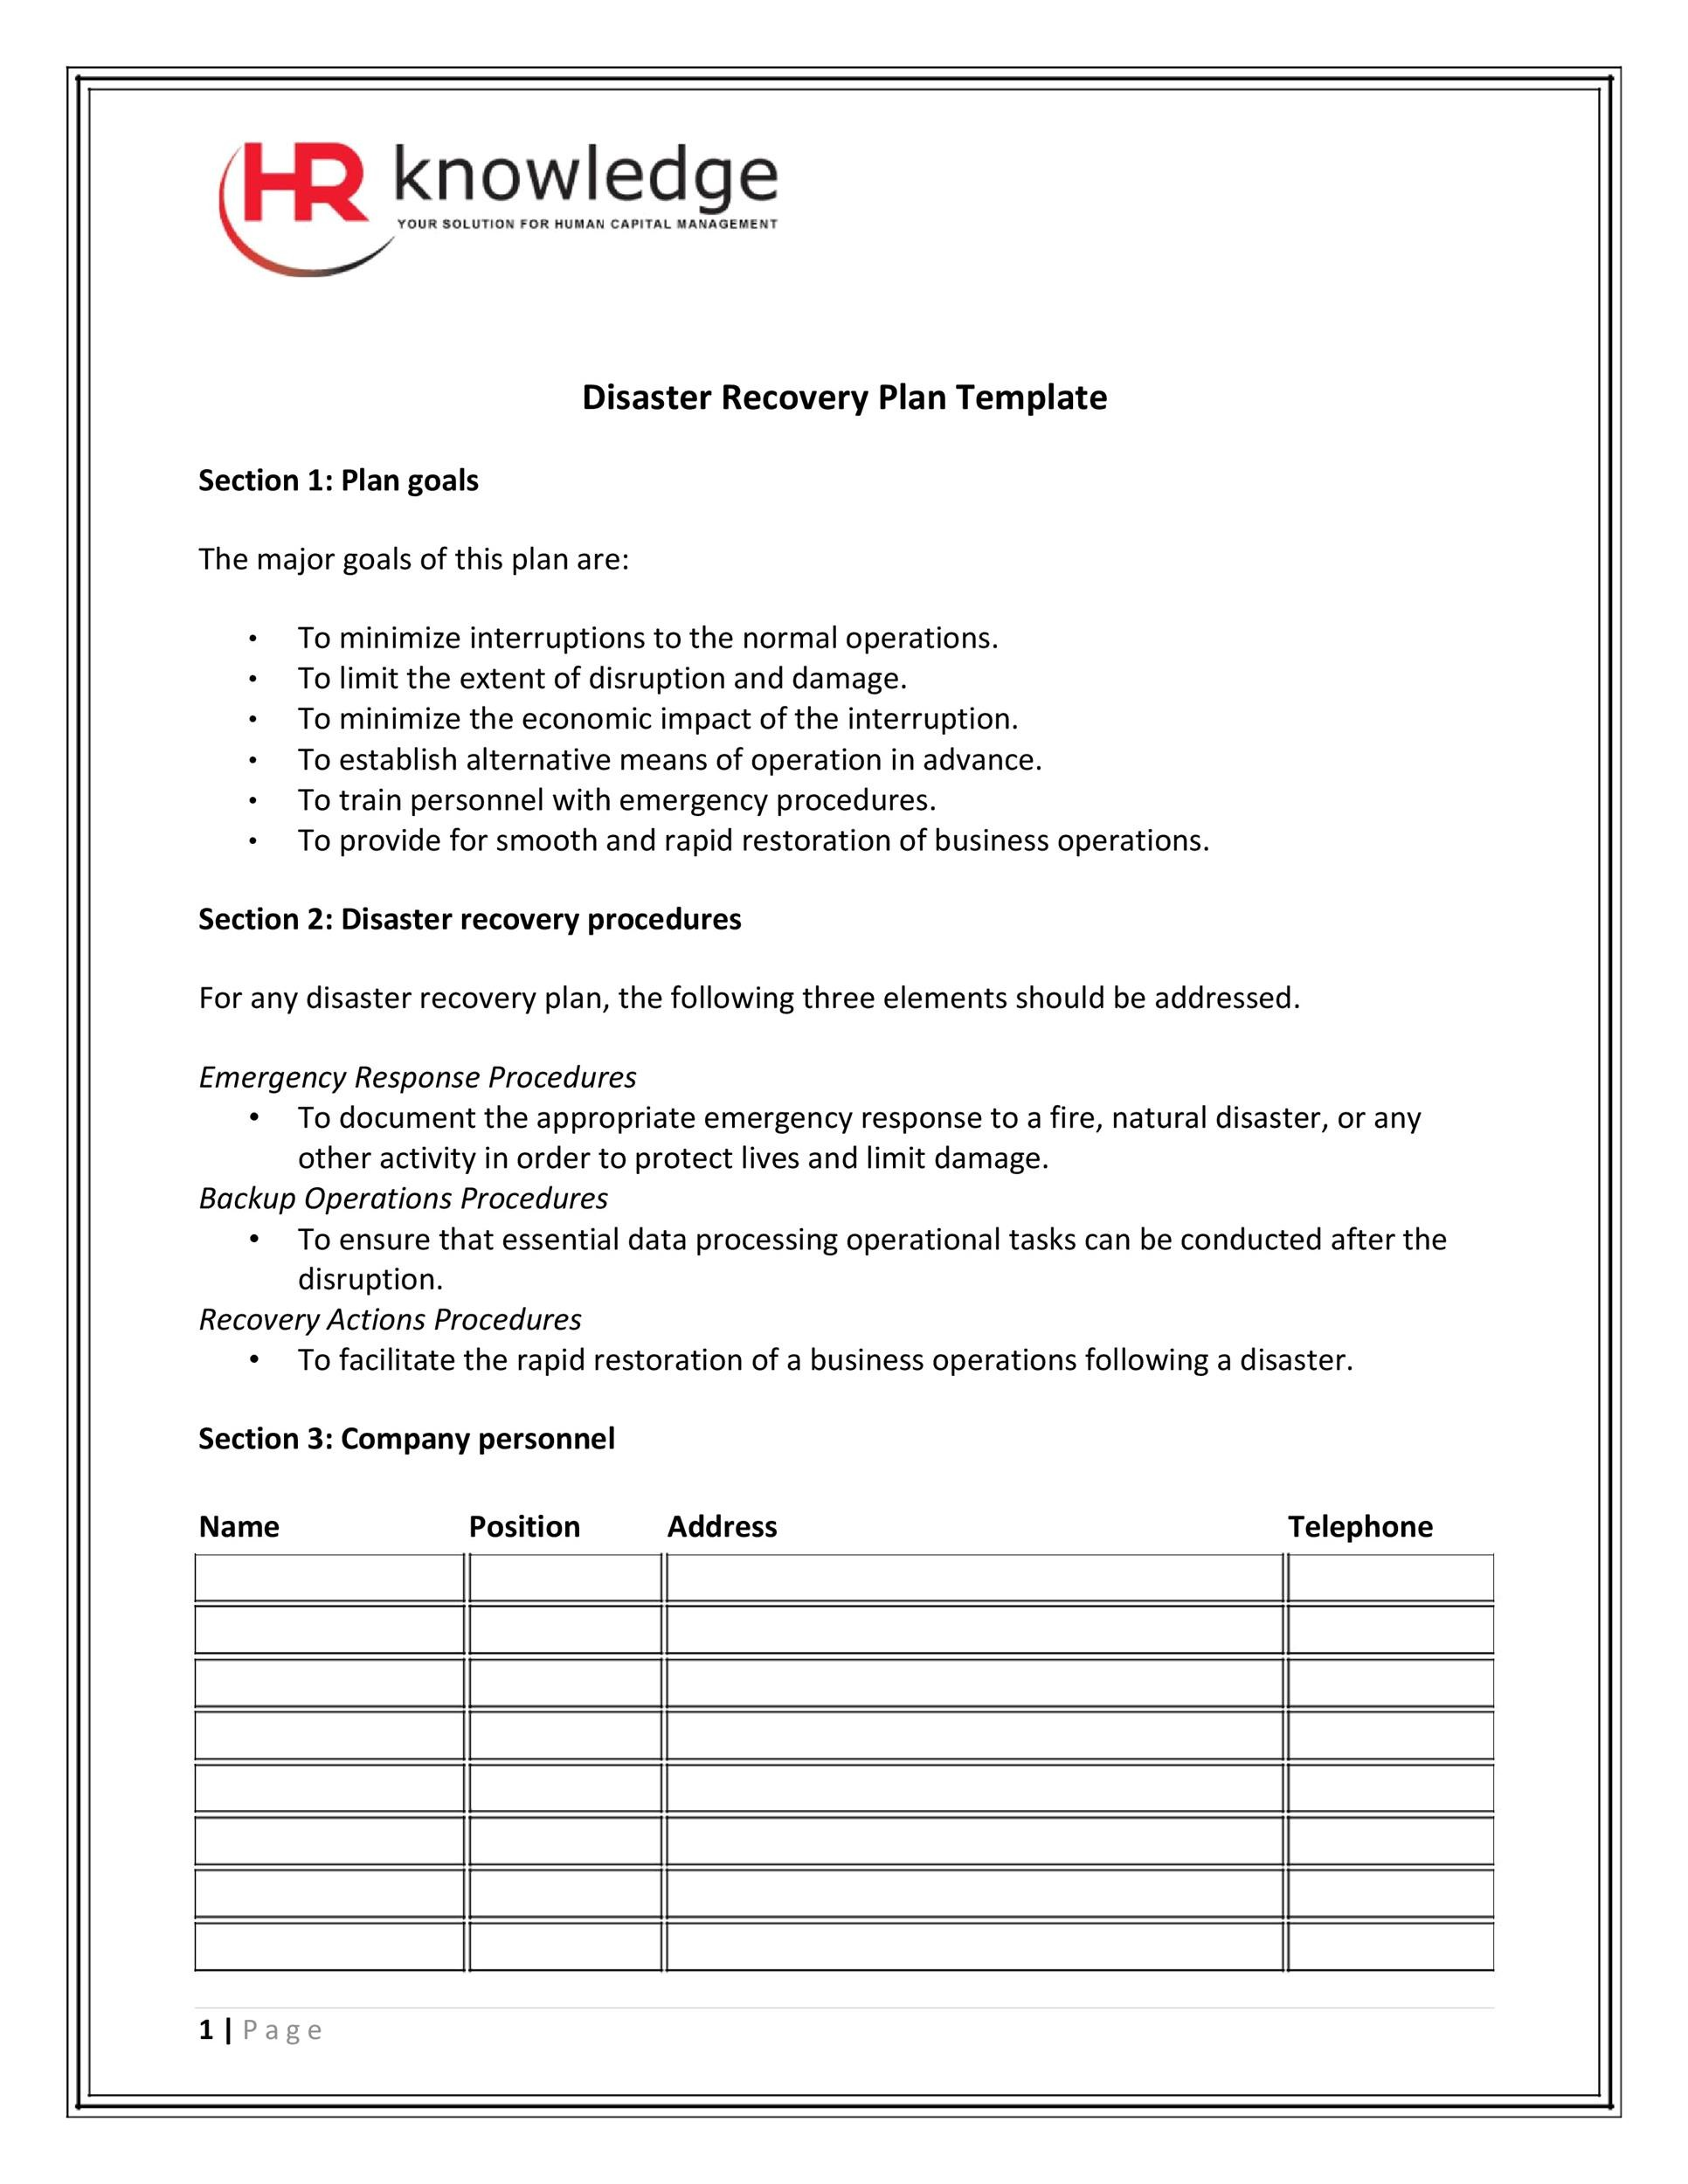 52 Effective Disaster Recovery Plan Templates DRP - Template Lab - disaster recovery plan template